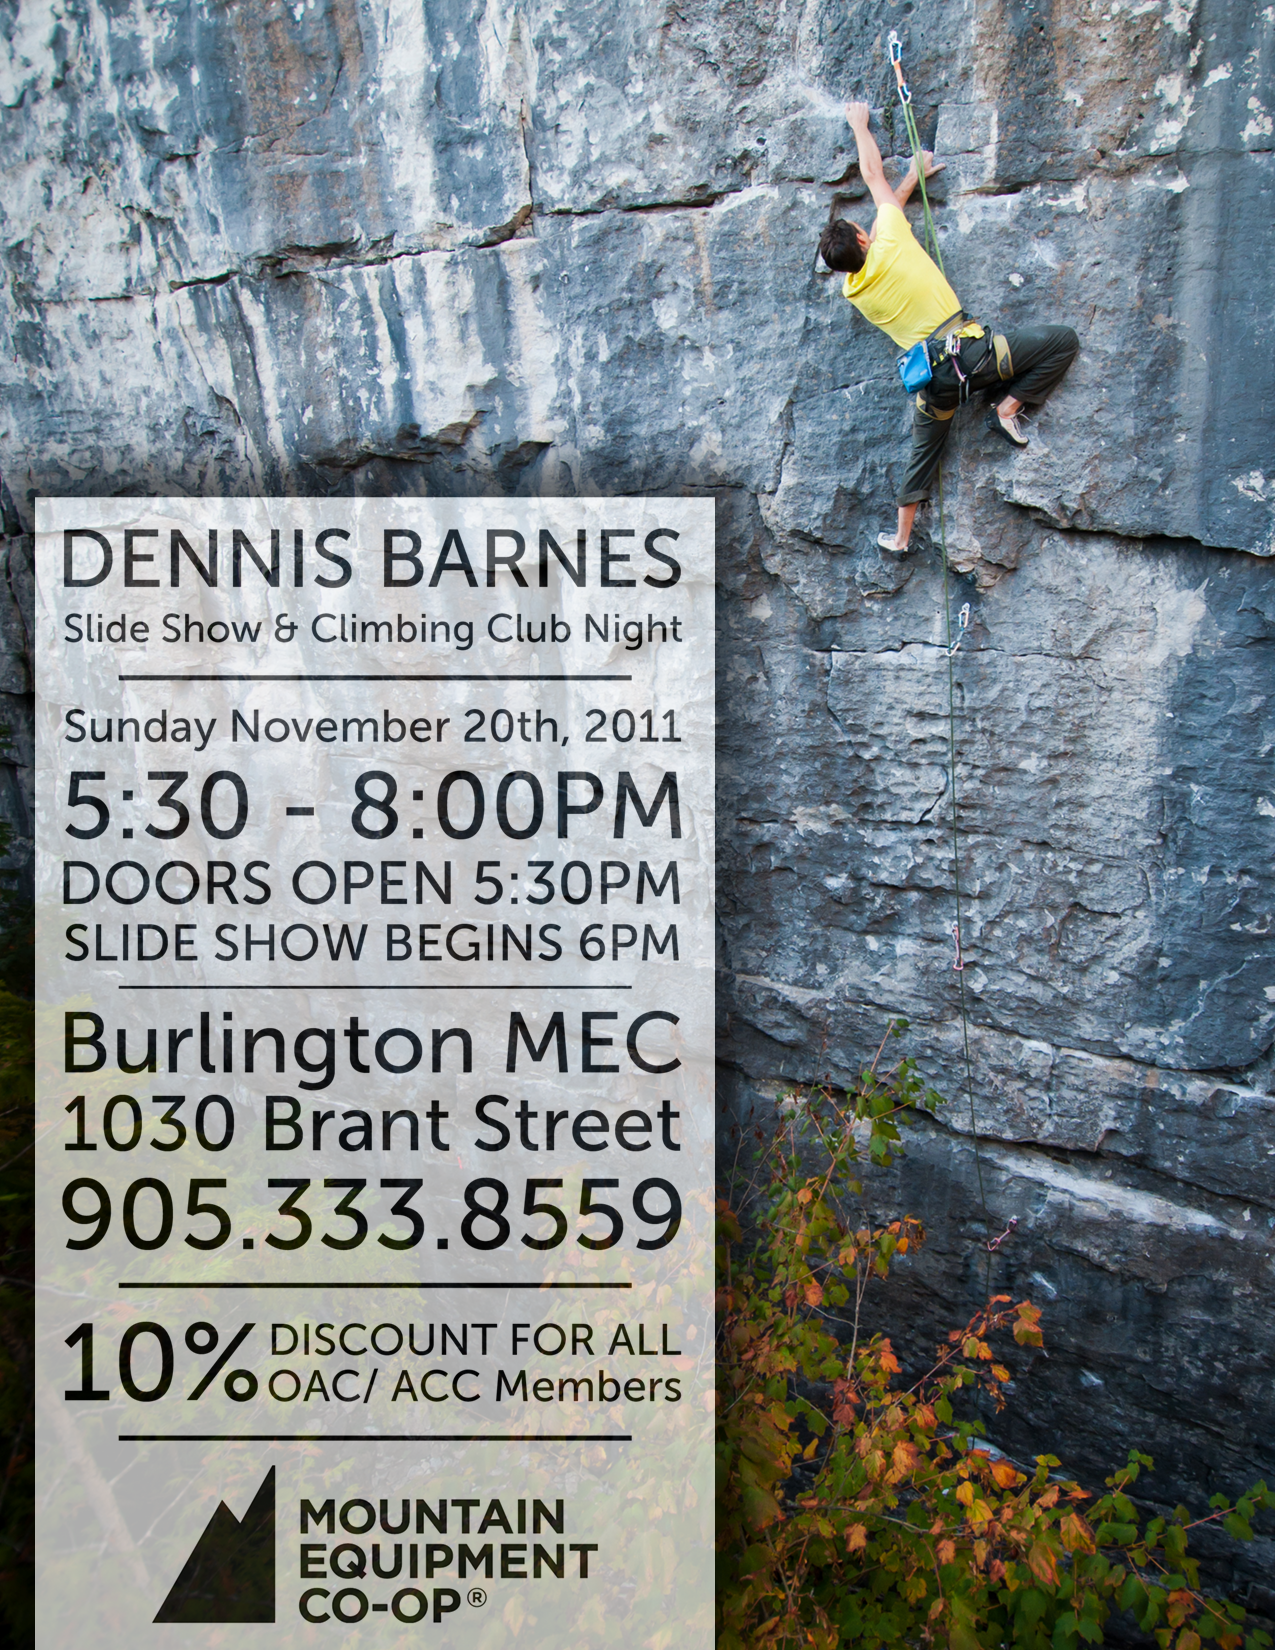 10% off at MEC Burlington on Nov 20th + Dennis Barnes slide show!